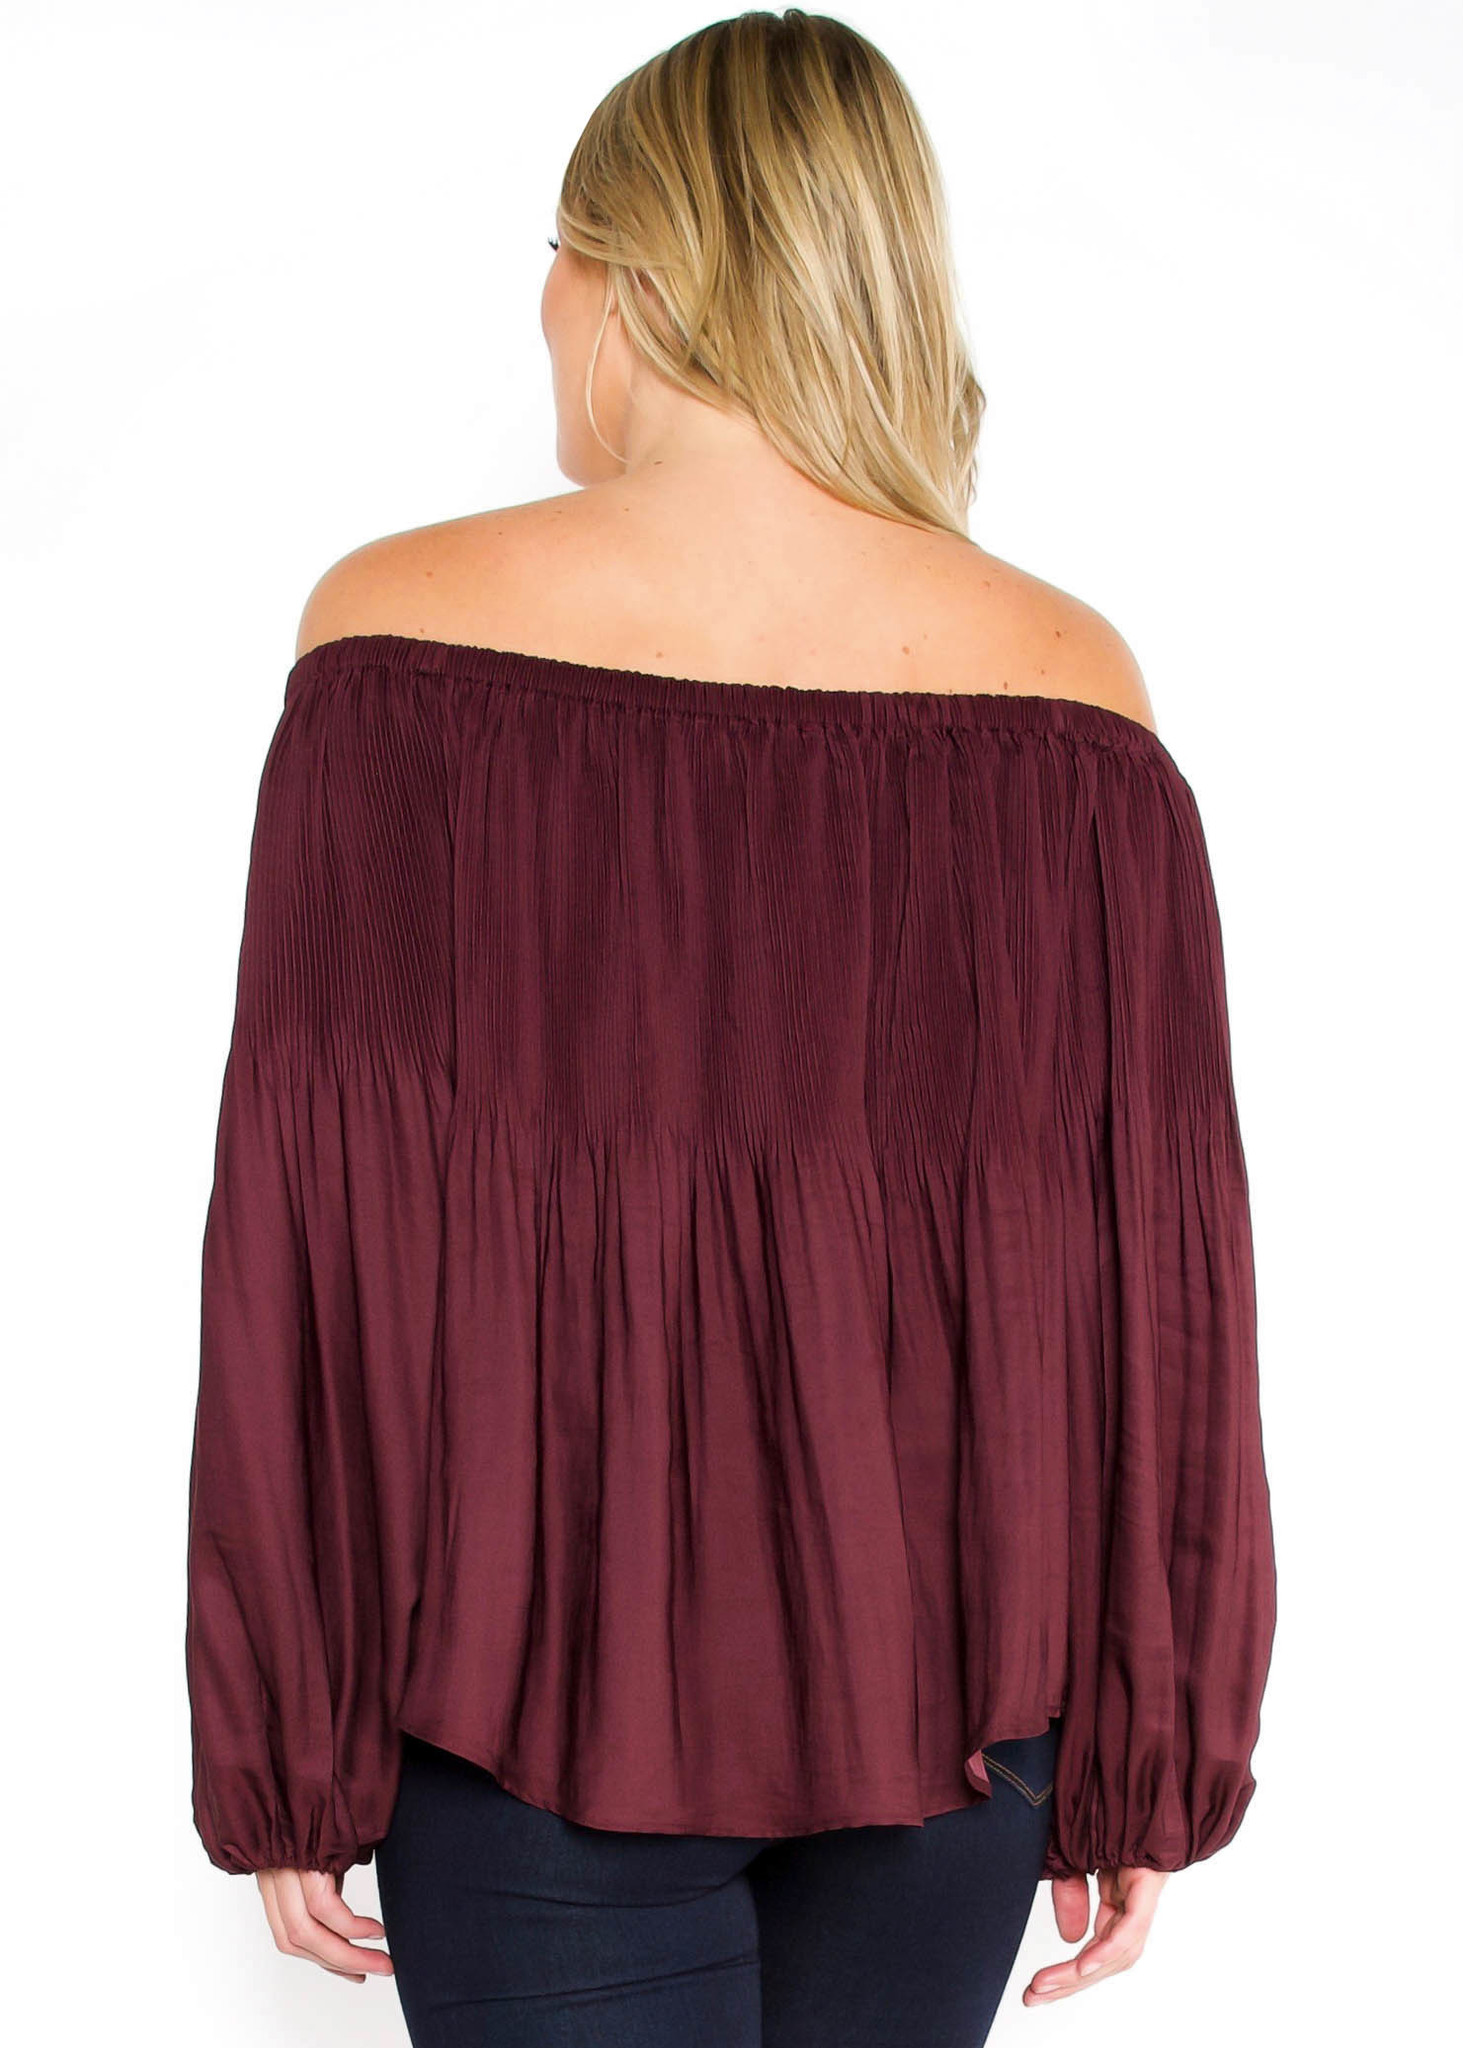 CROSSING PATHS PLEATED BLOUSE